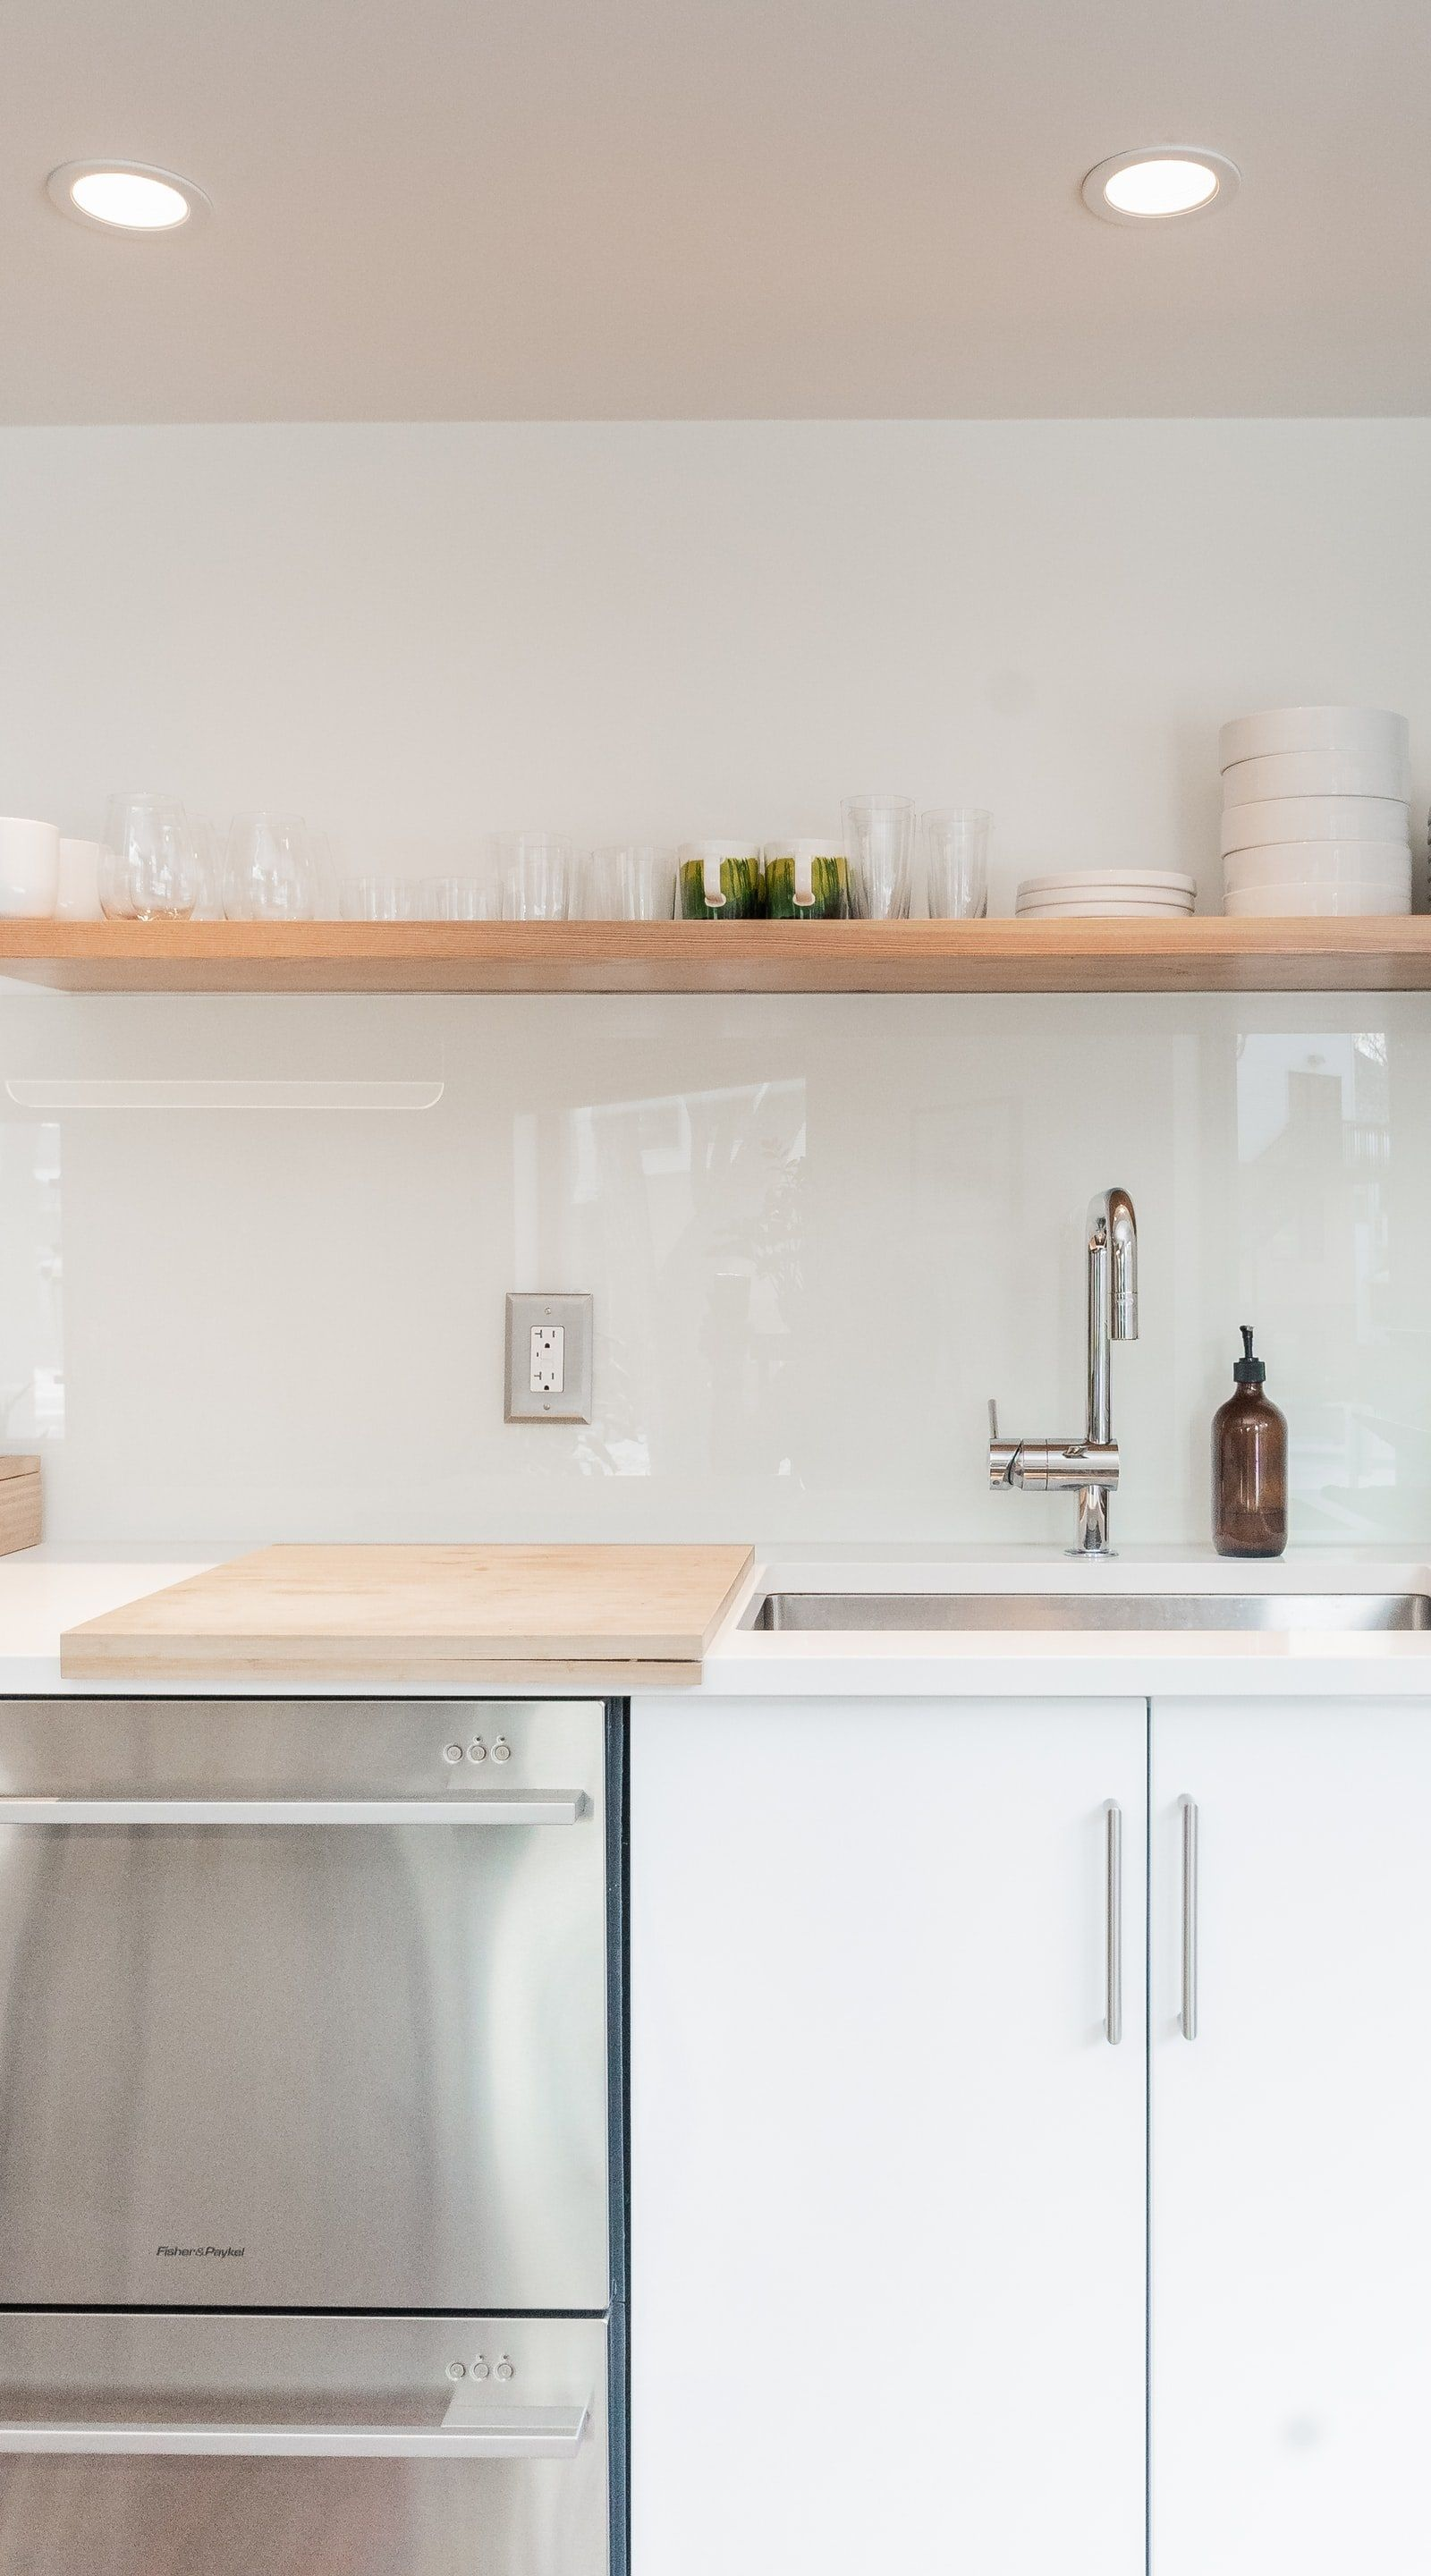 Trying To Replace An Old Kitchen Faucet Replacing A Kitchen Faucet Can Be Time Consuming Home Improvement Lucki In 2020 Kitchen Decor Kitchen Design Kitchen Cabinets